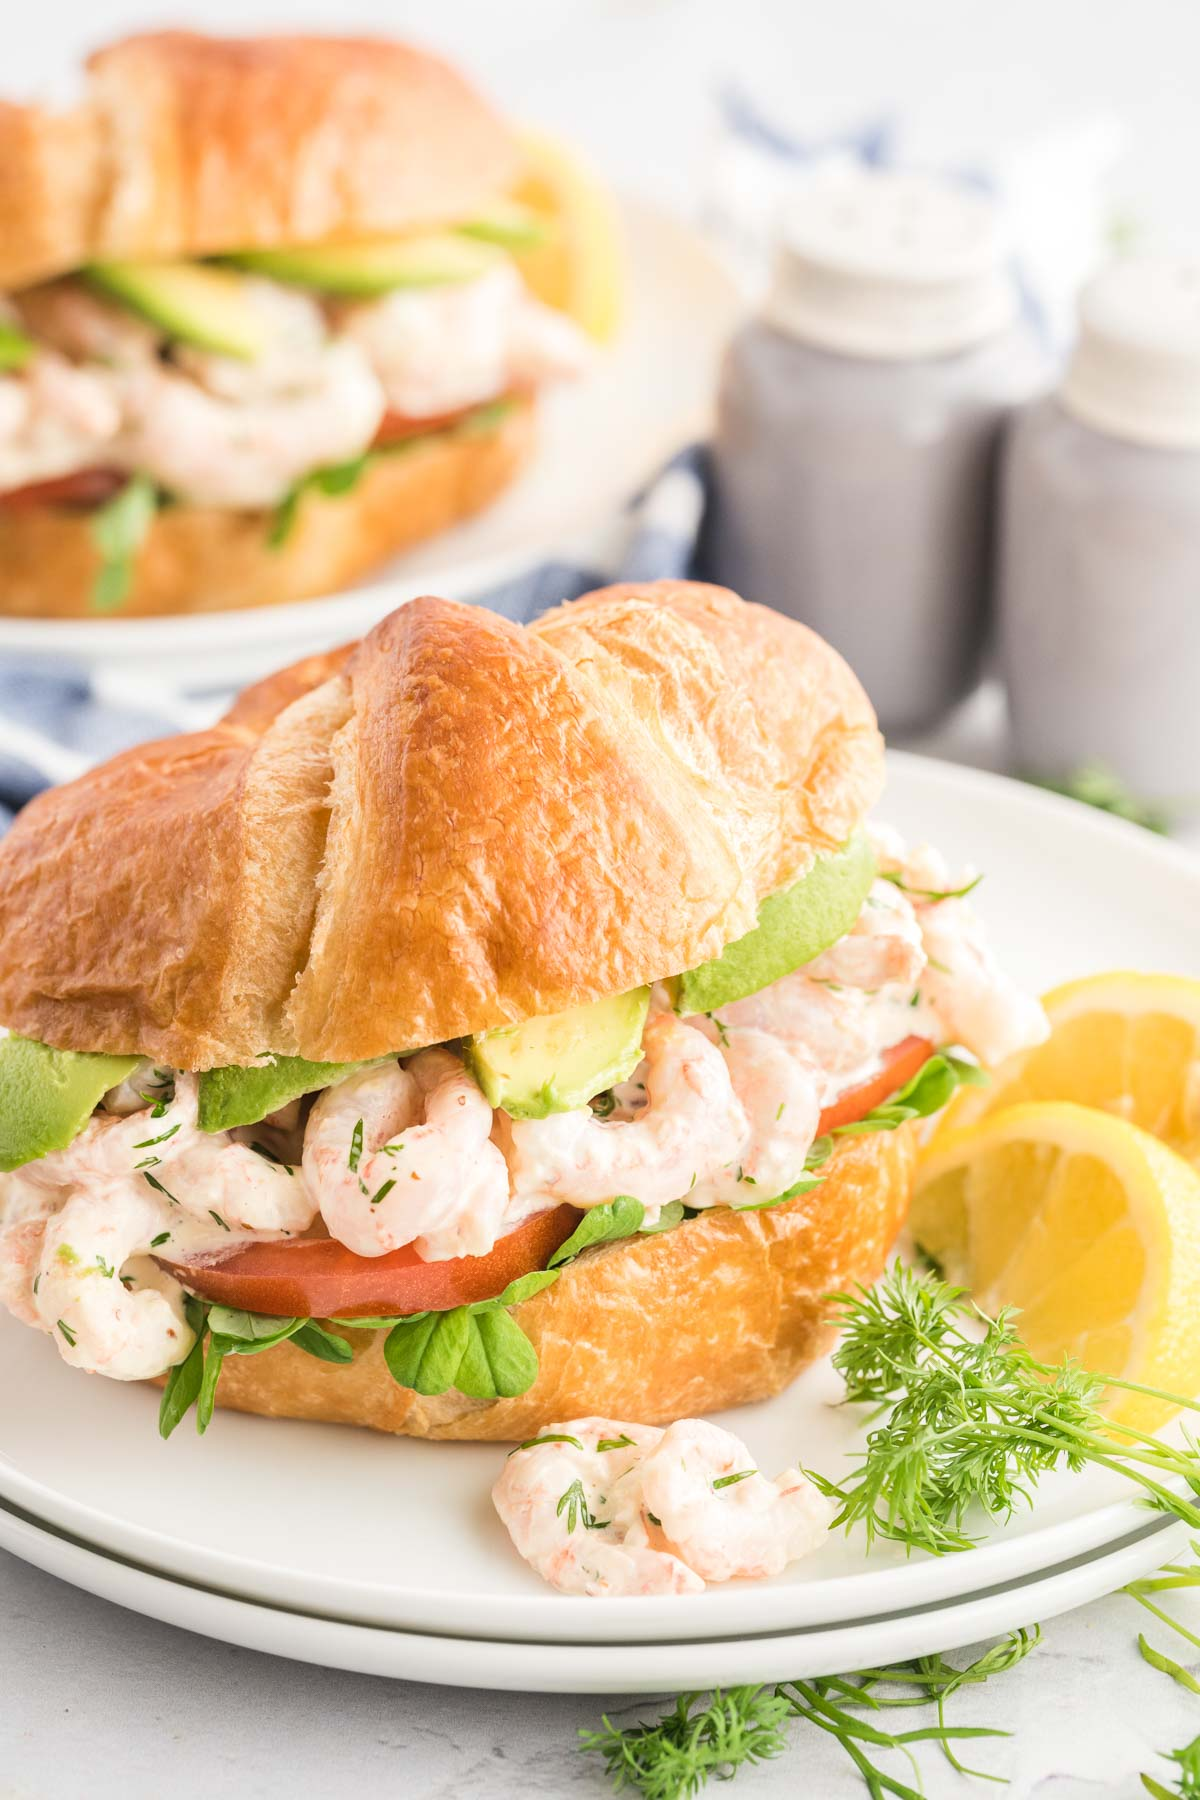 Two shrimp sandwiches on plates garnished with fresh dill and lemon slices.  Salt and pepper shakers in the background.